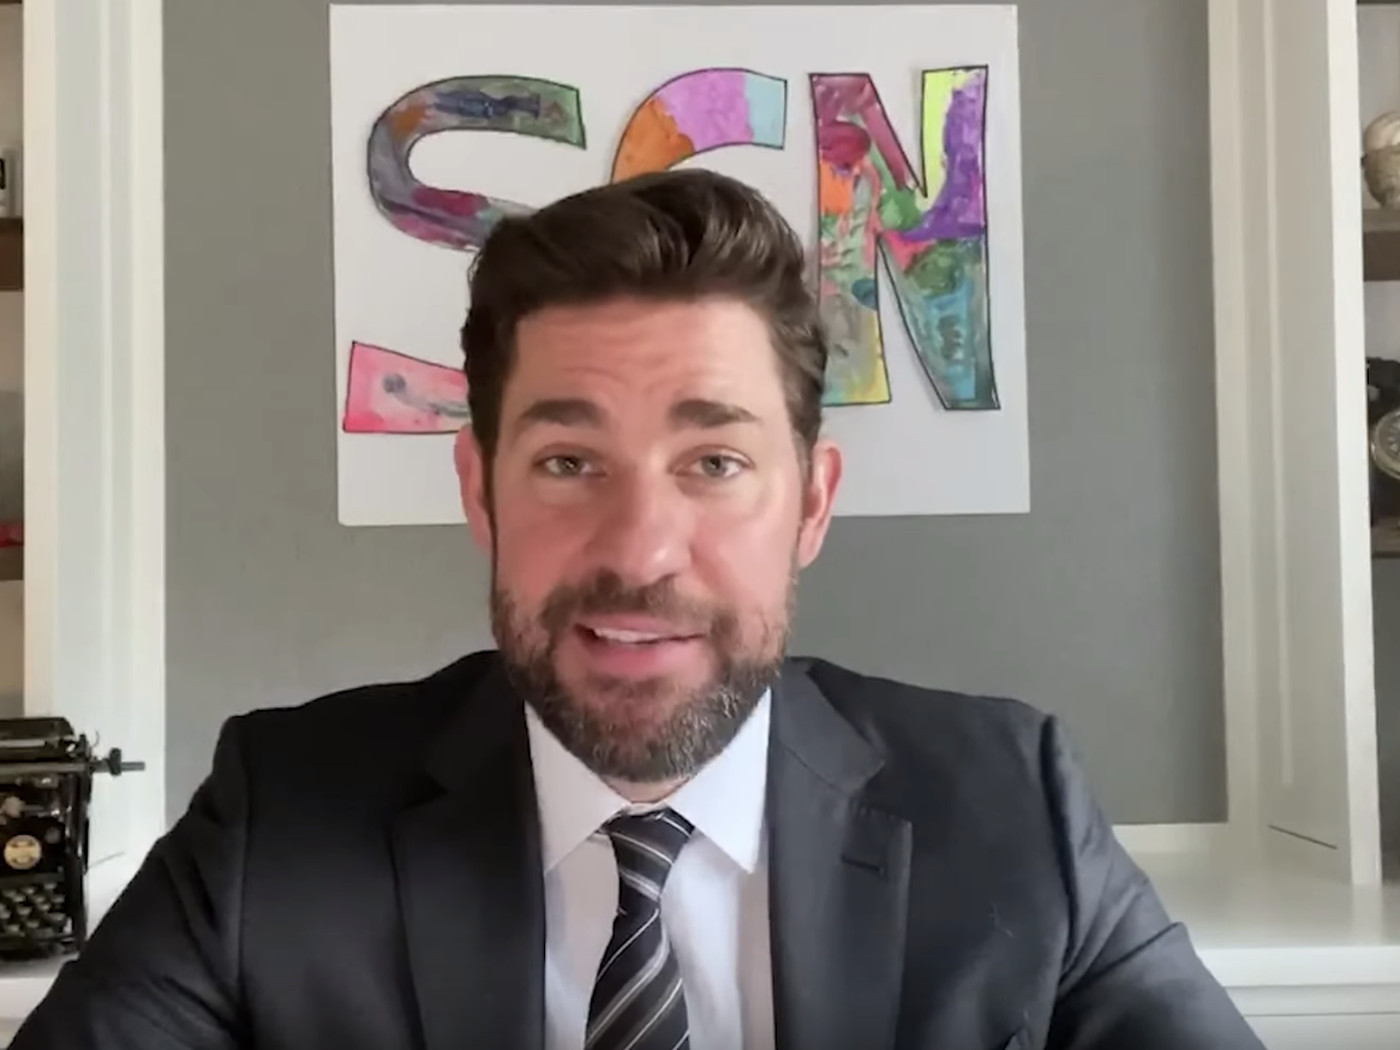 The Office S John Krasinski Launched A Youtube Channel Dedicated